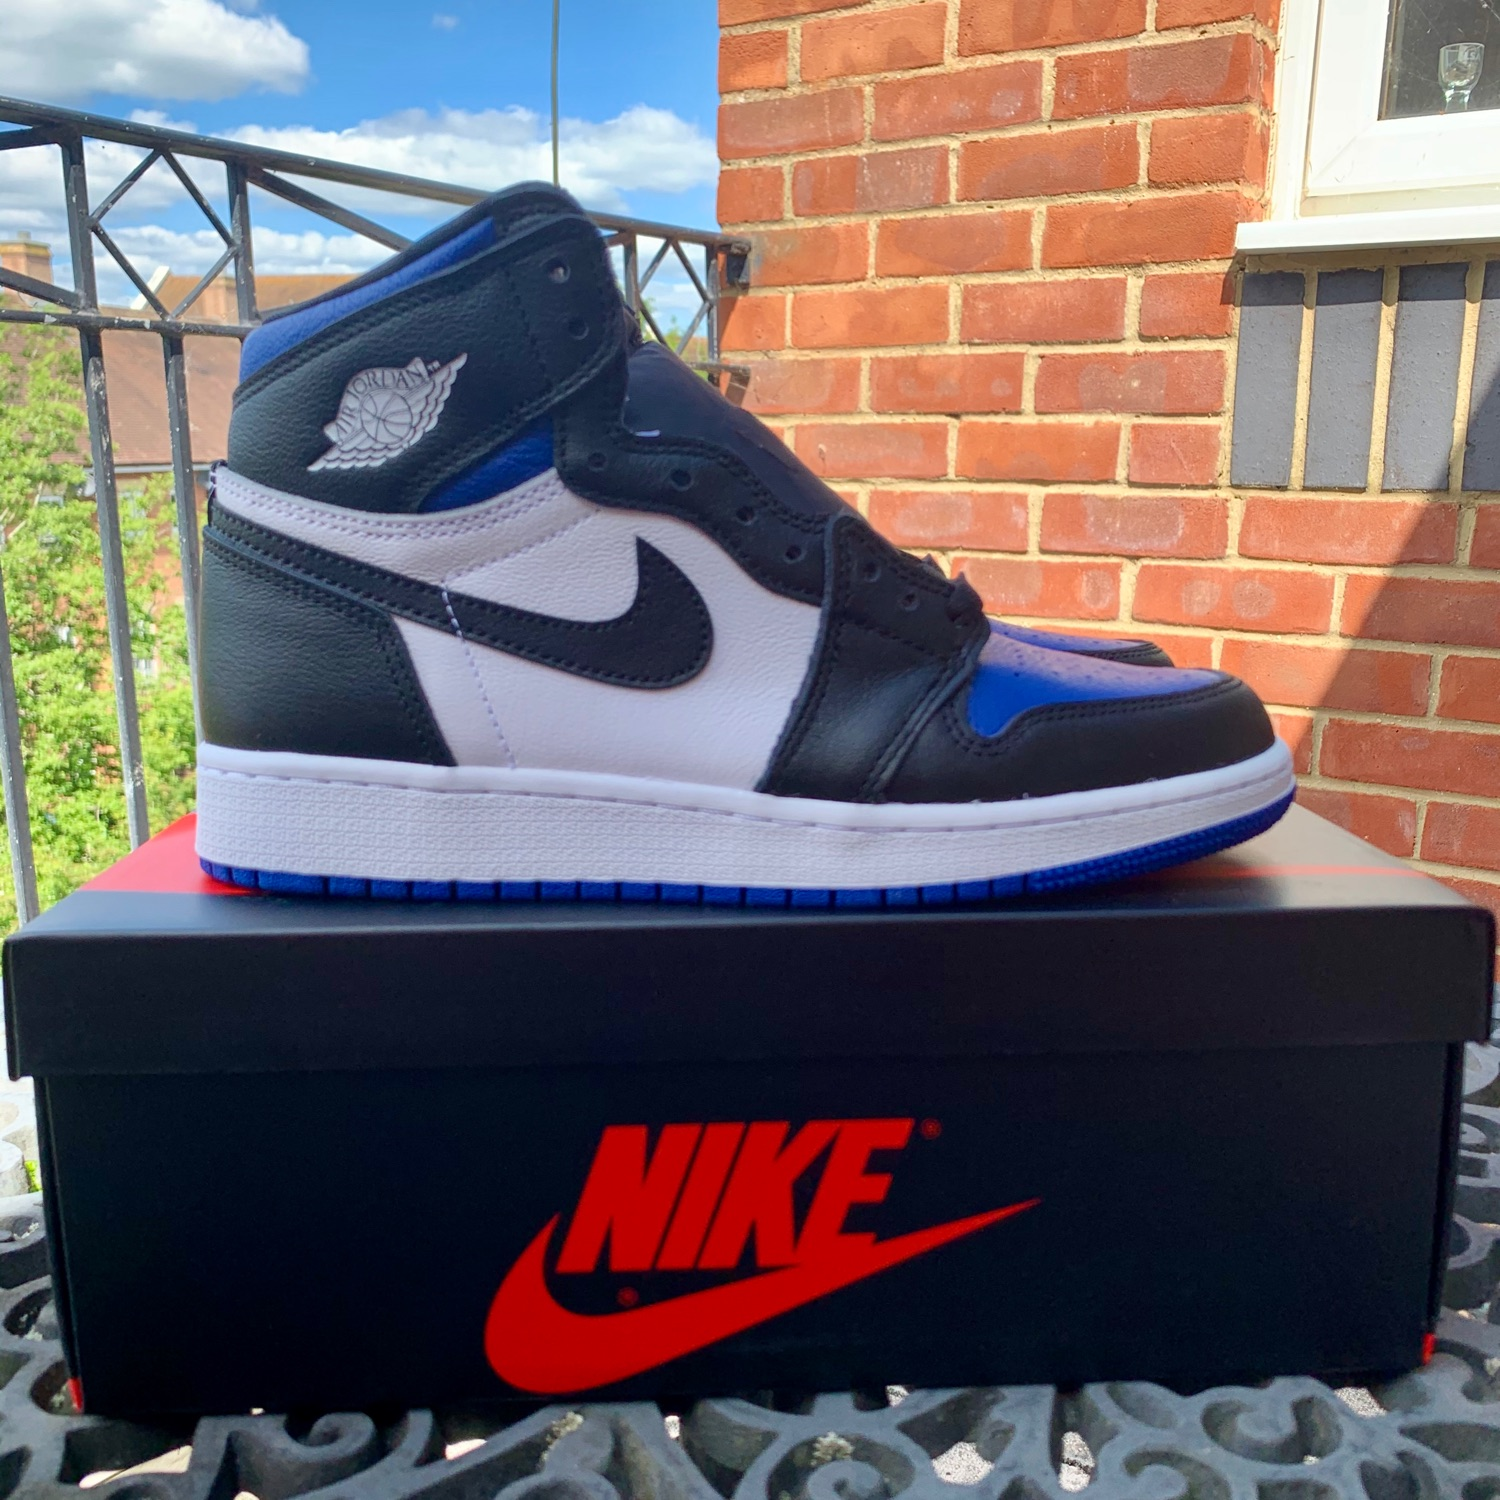 Nike Air Jordan 1 Royal Toe Gs